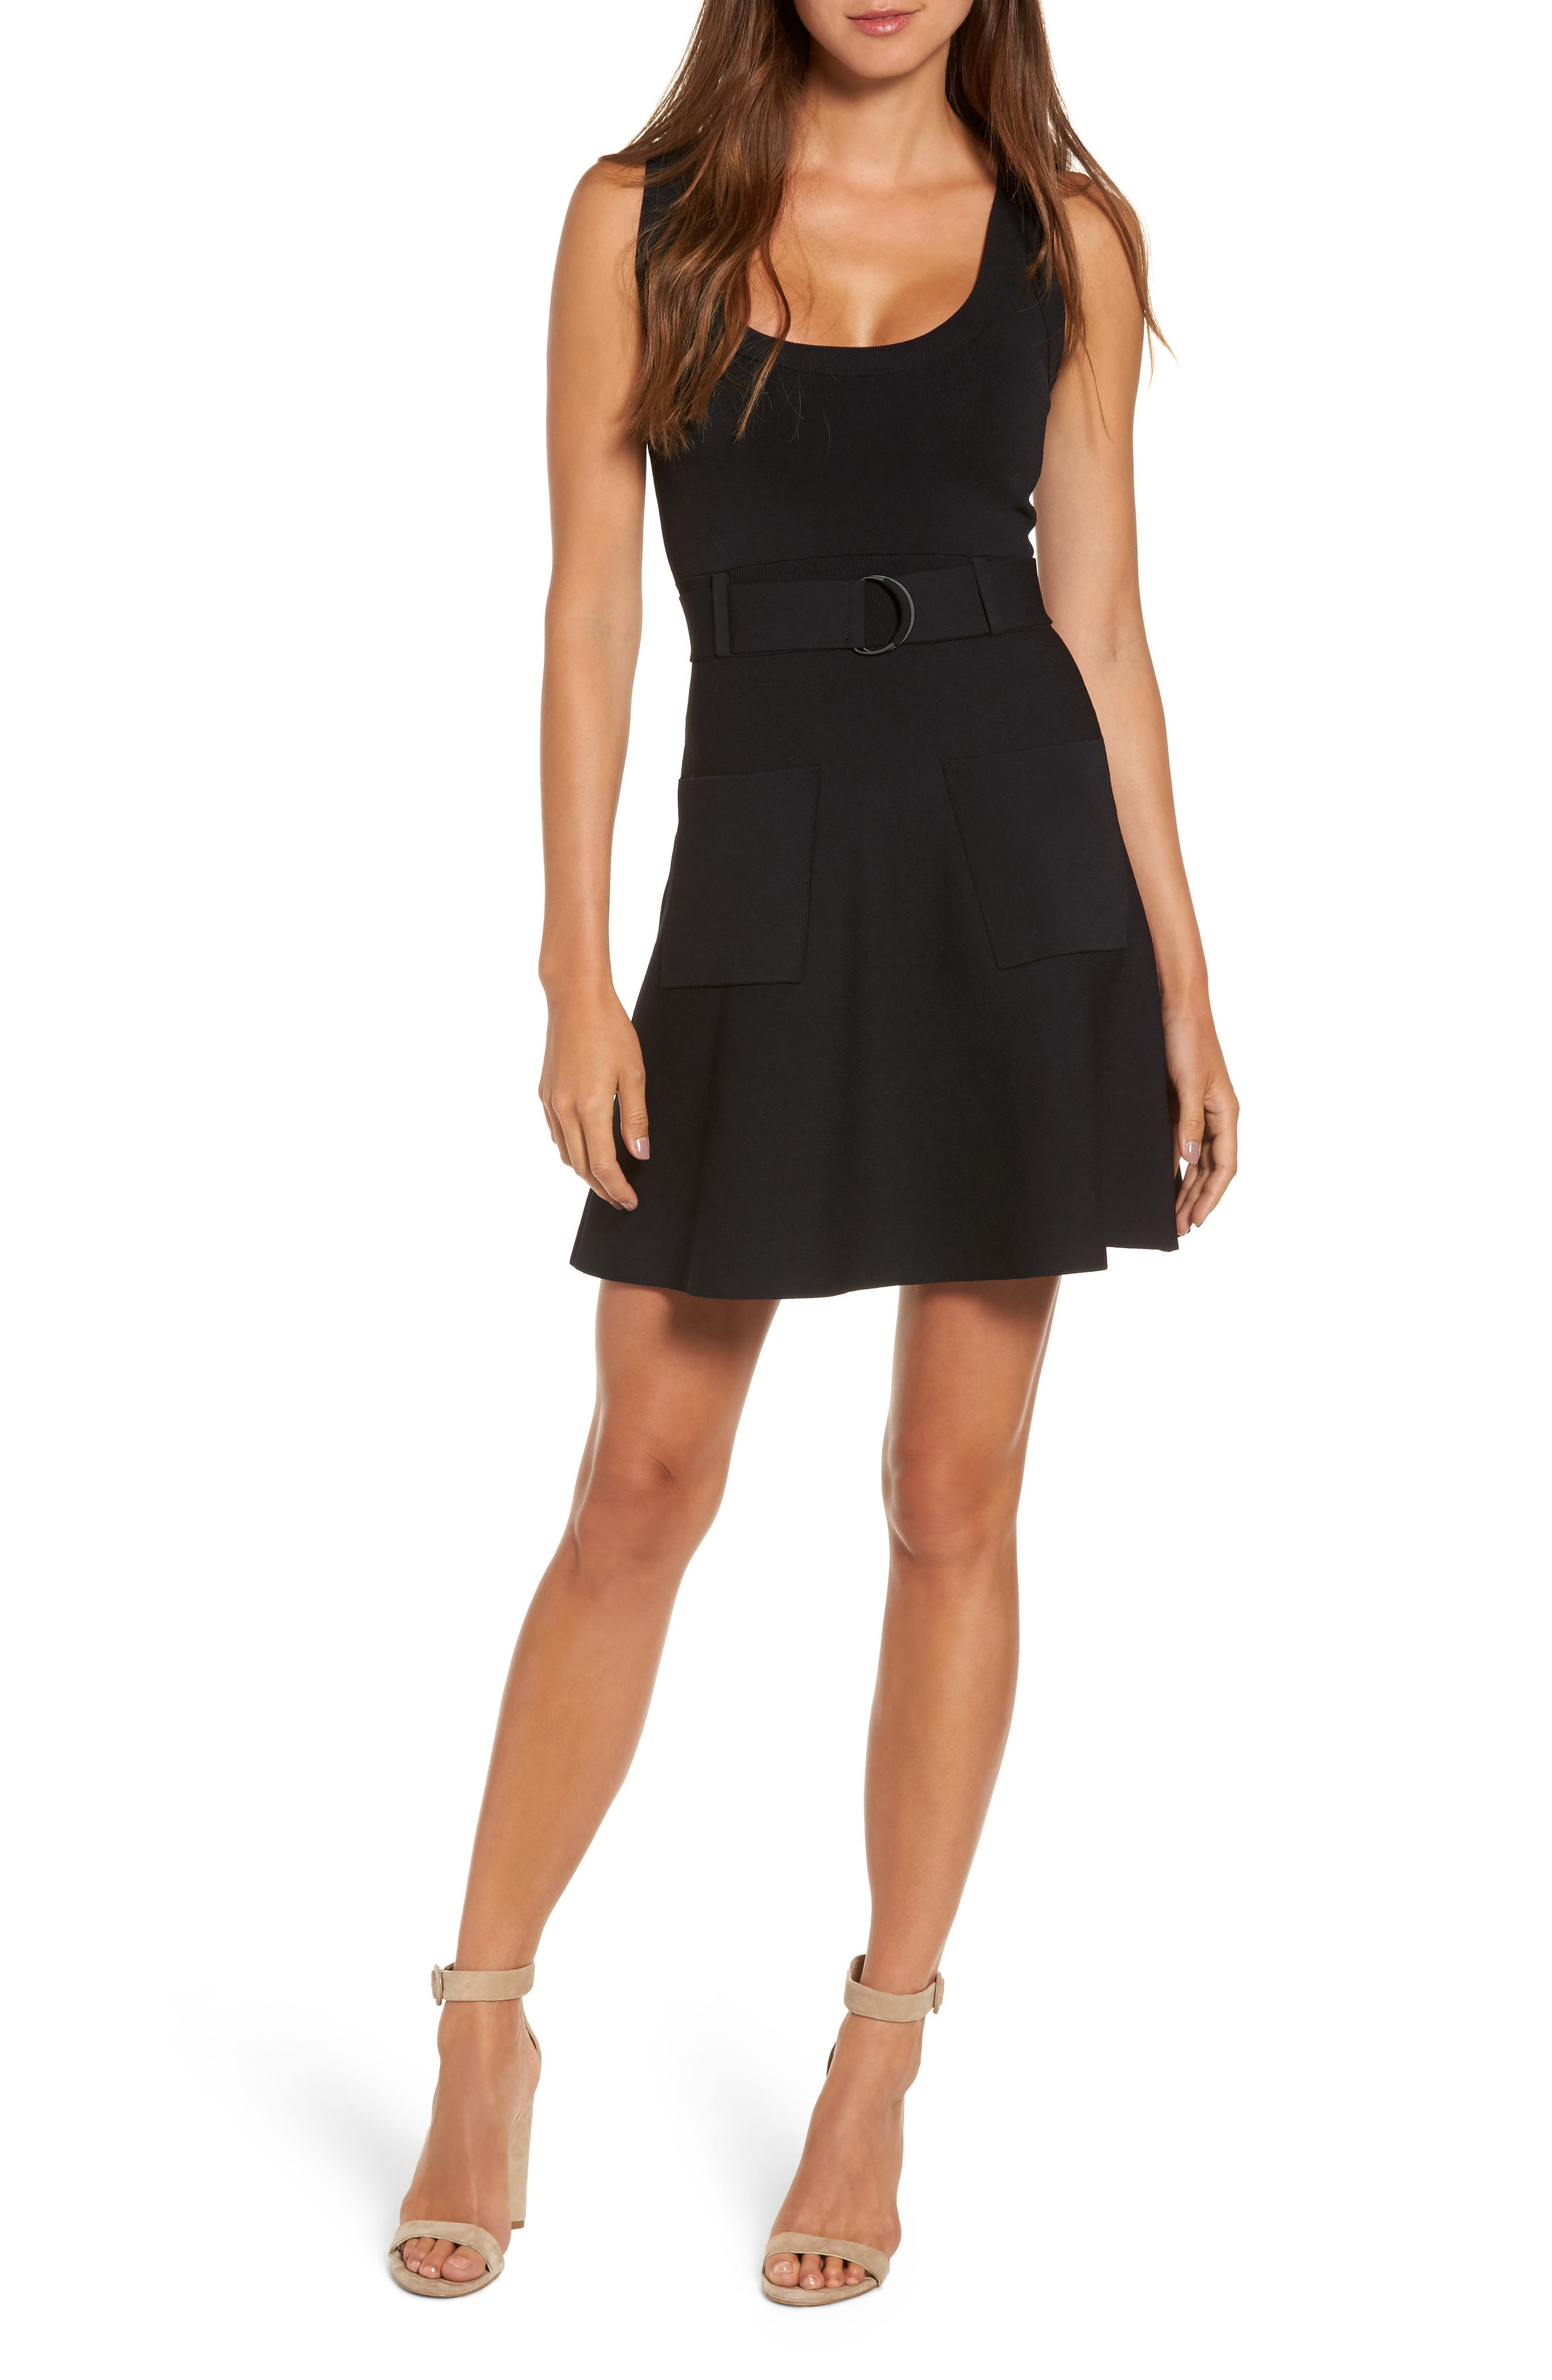 Alternate Image 1 Selected - KENDALL + KYLIE Sleeveless Fit & Flare Dress